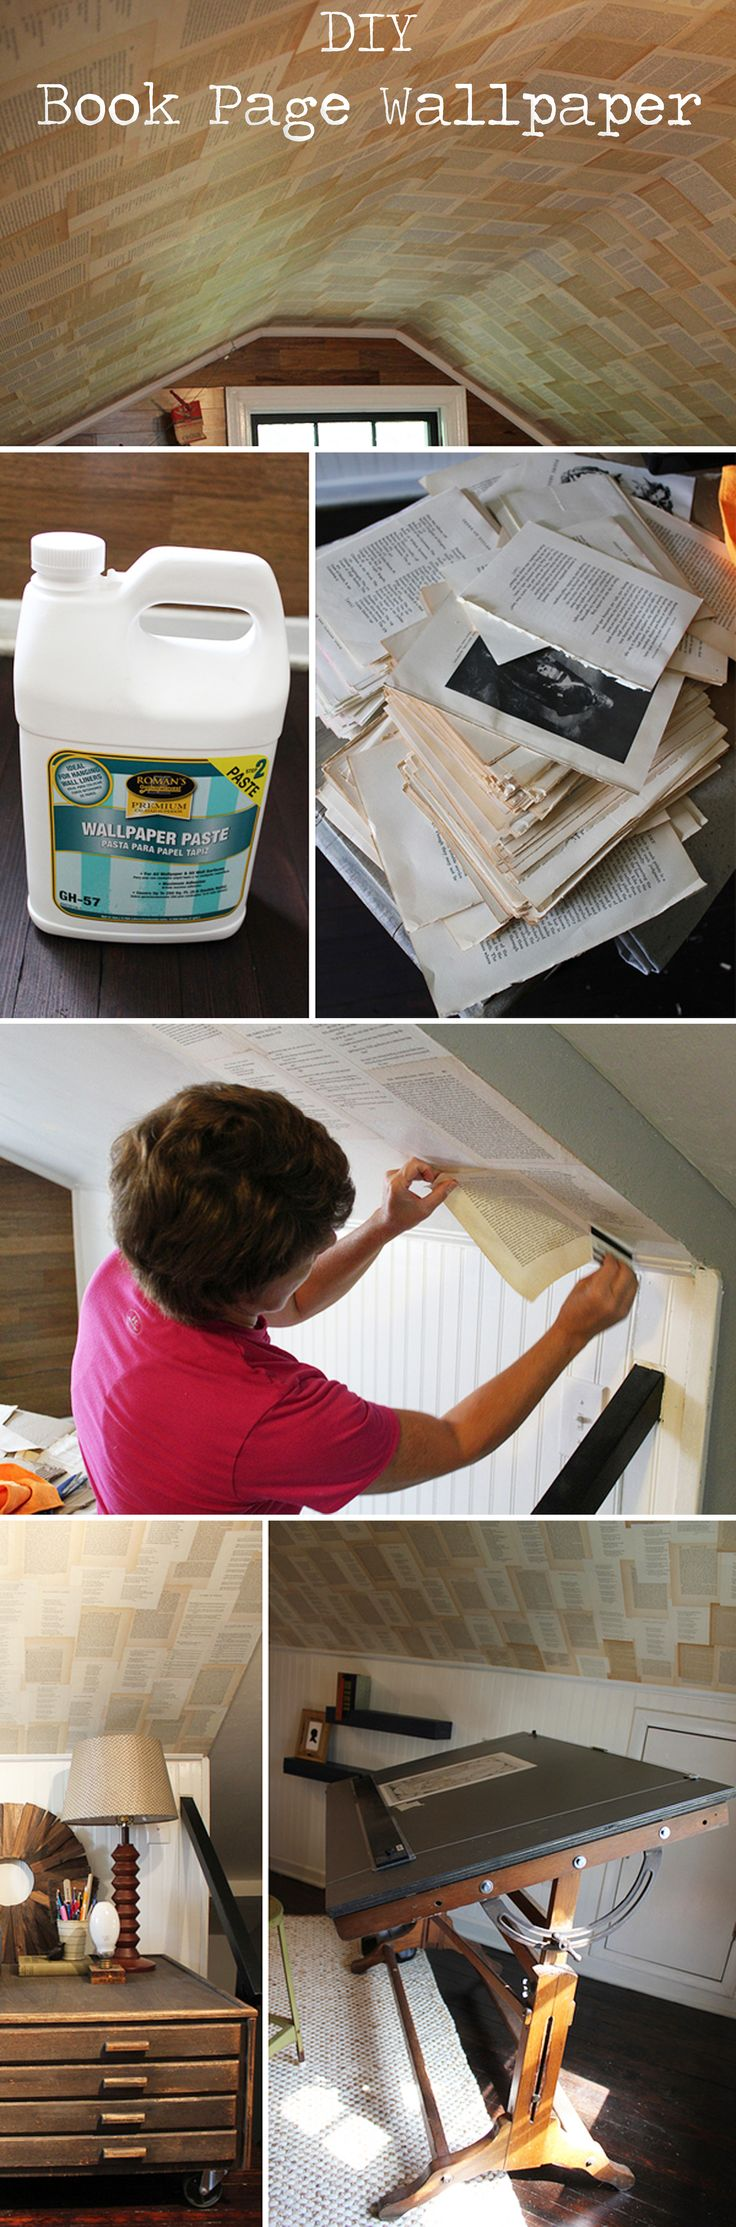 Technique   WALLPAPER :: How To Wallpaper w/ Book Pages (Permanent) :: Uses wallpaper paste. Tip: Smooth pages out w/ a credit card!   #bookpages #karapaslaydesigns #wallpaper